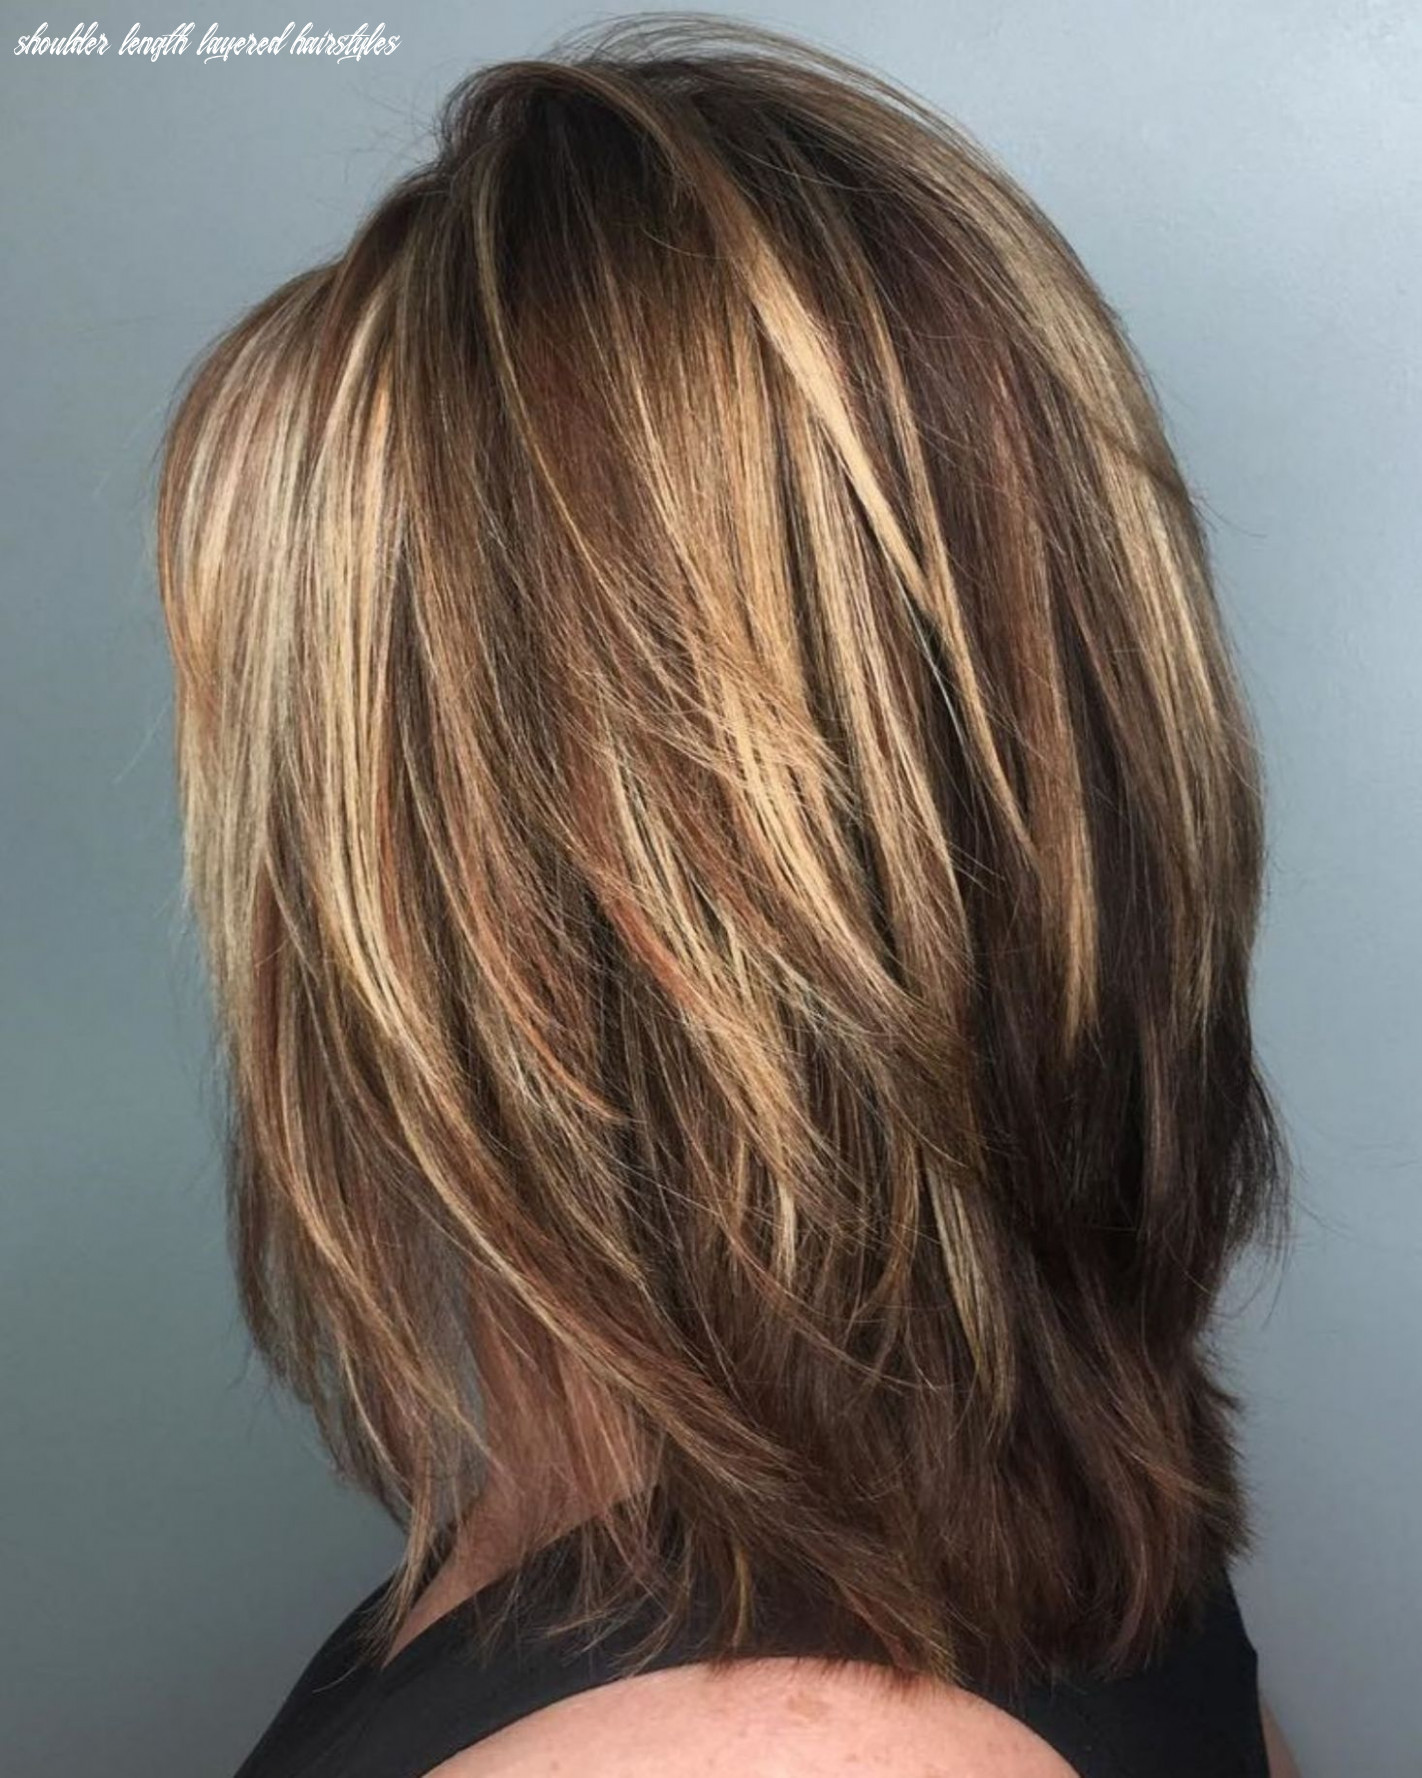 Pin on hair shoulder length layered hairstyles